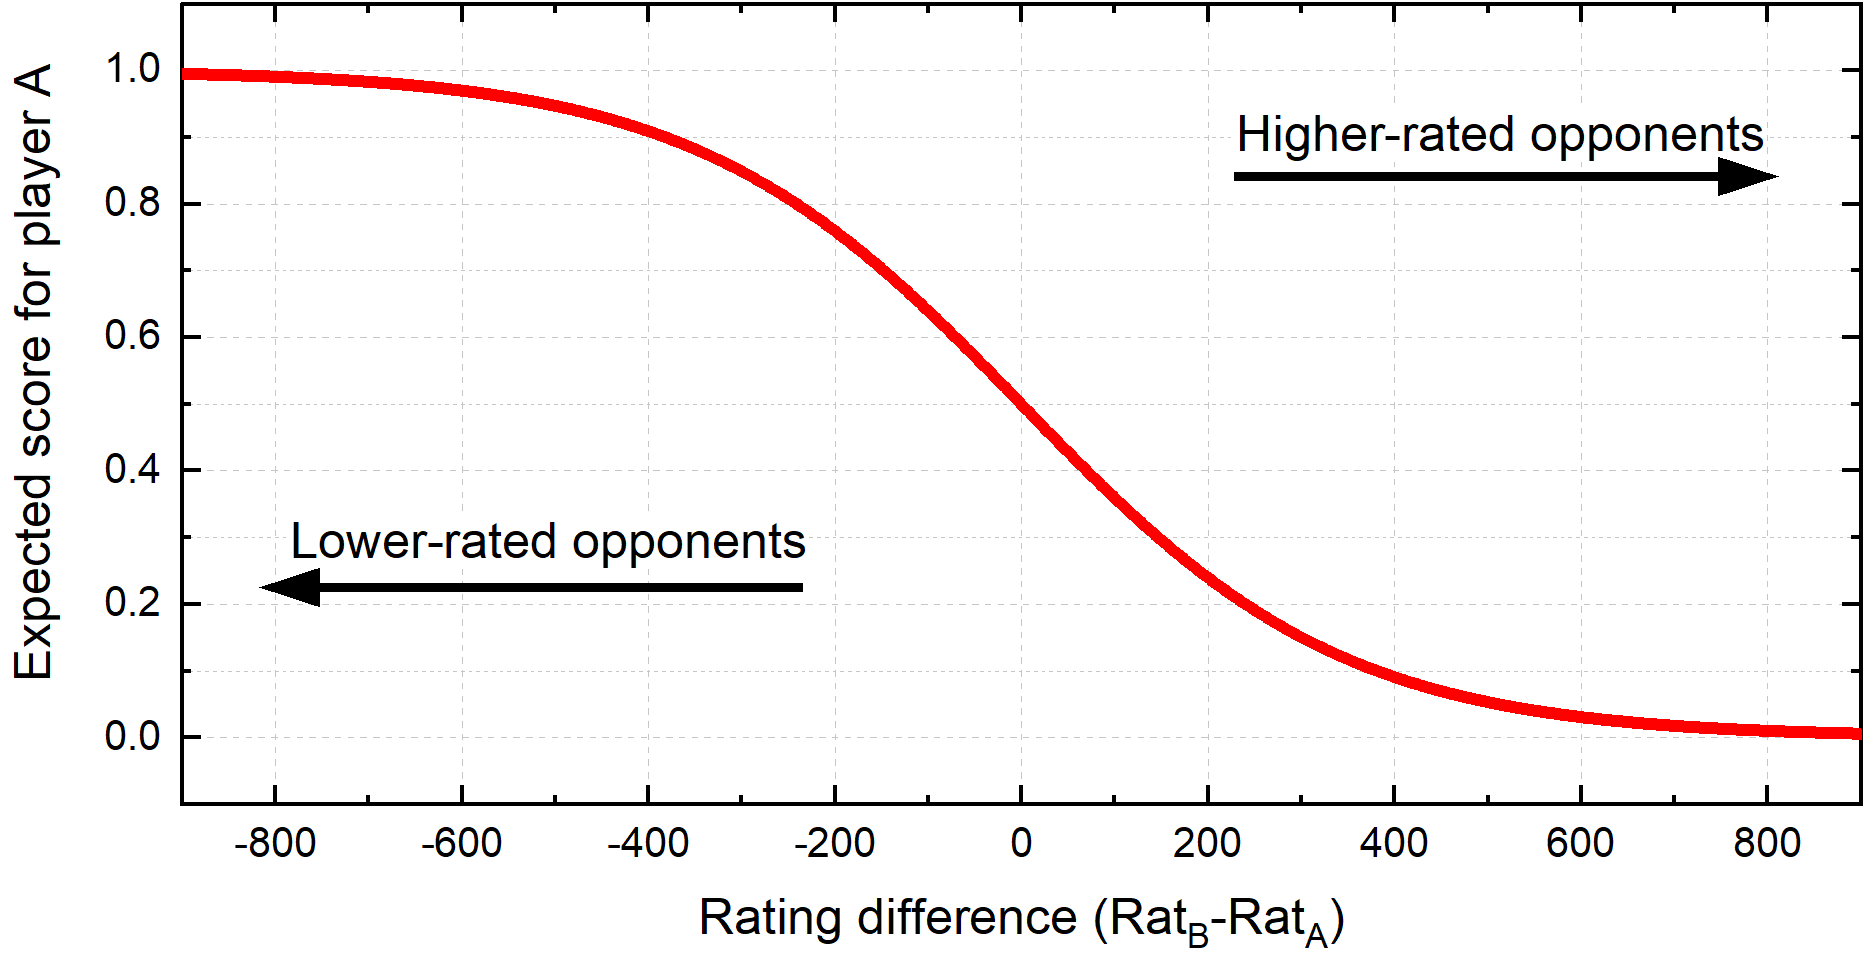 Elo expected score dependence of players' ratings difference.